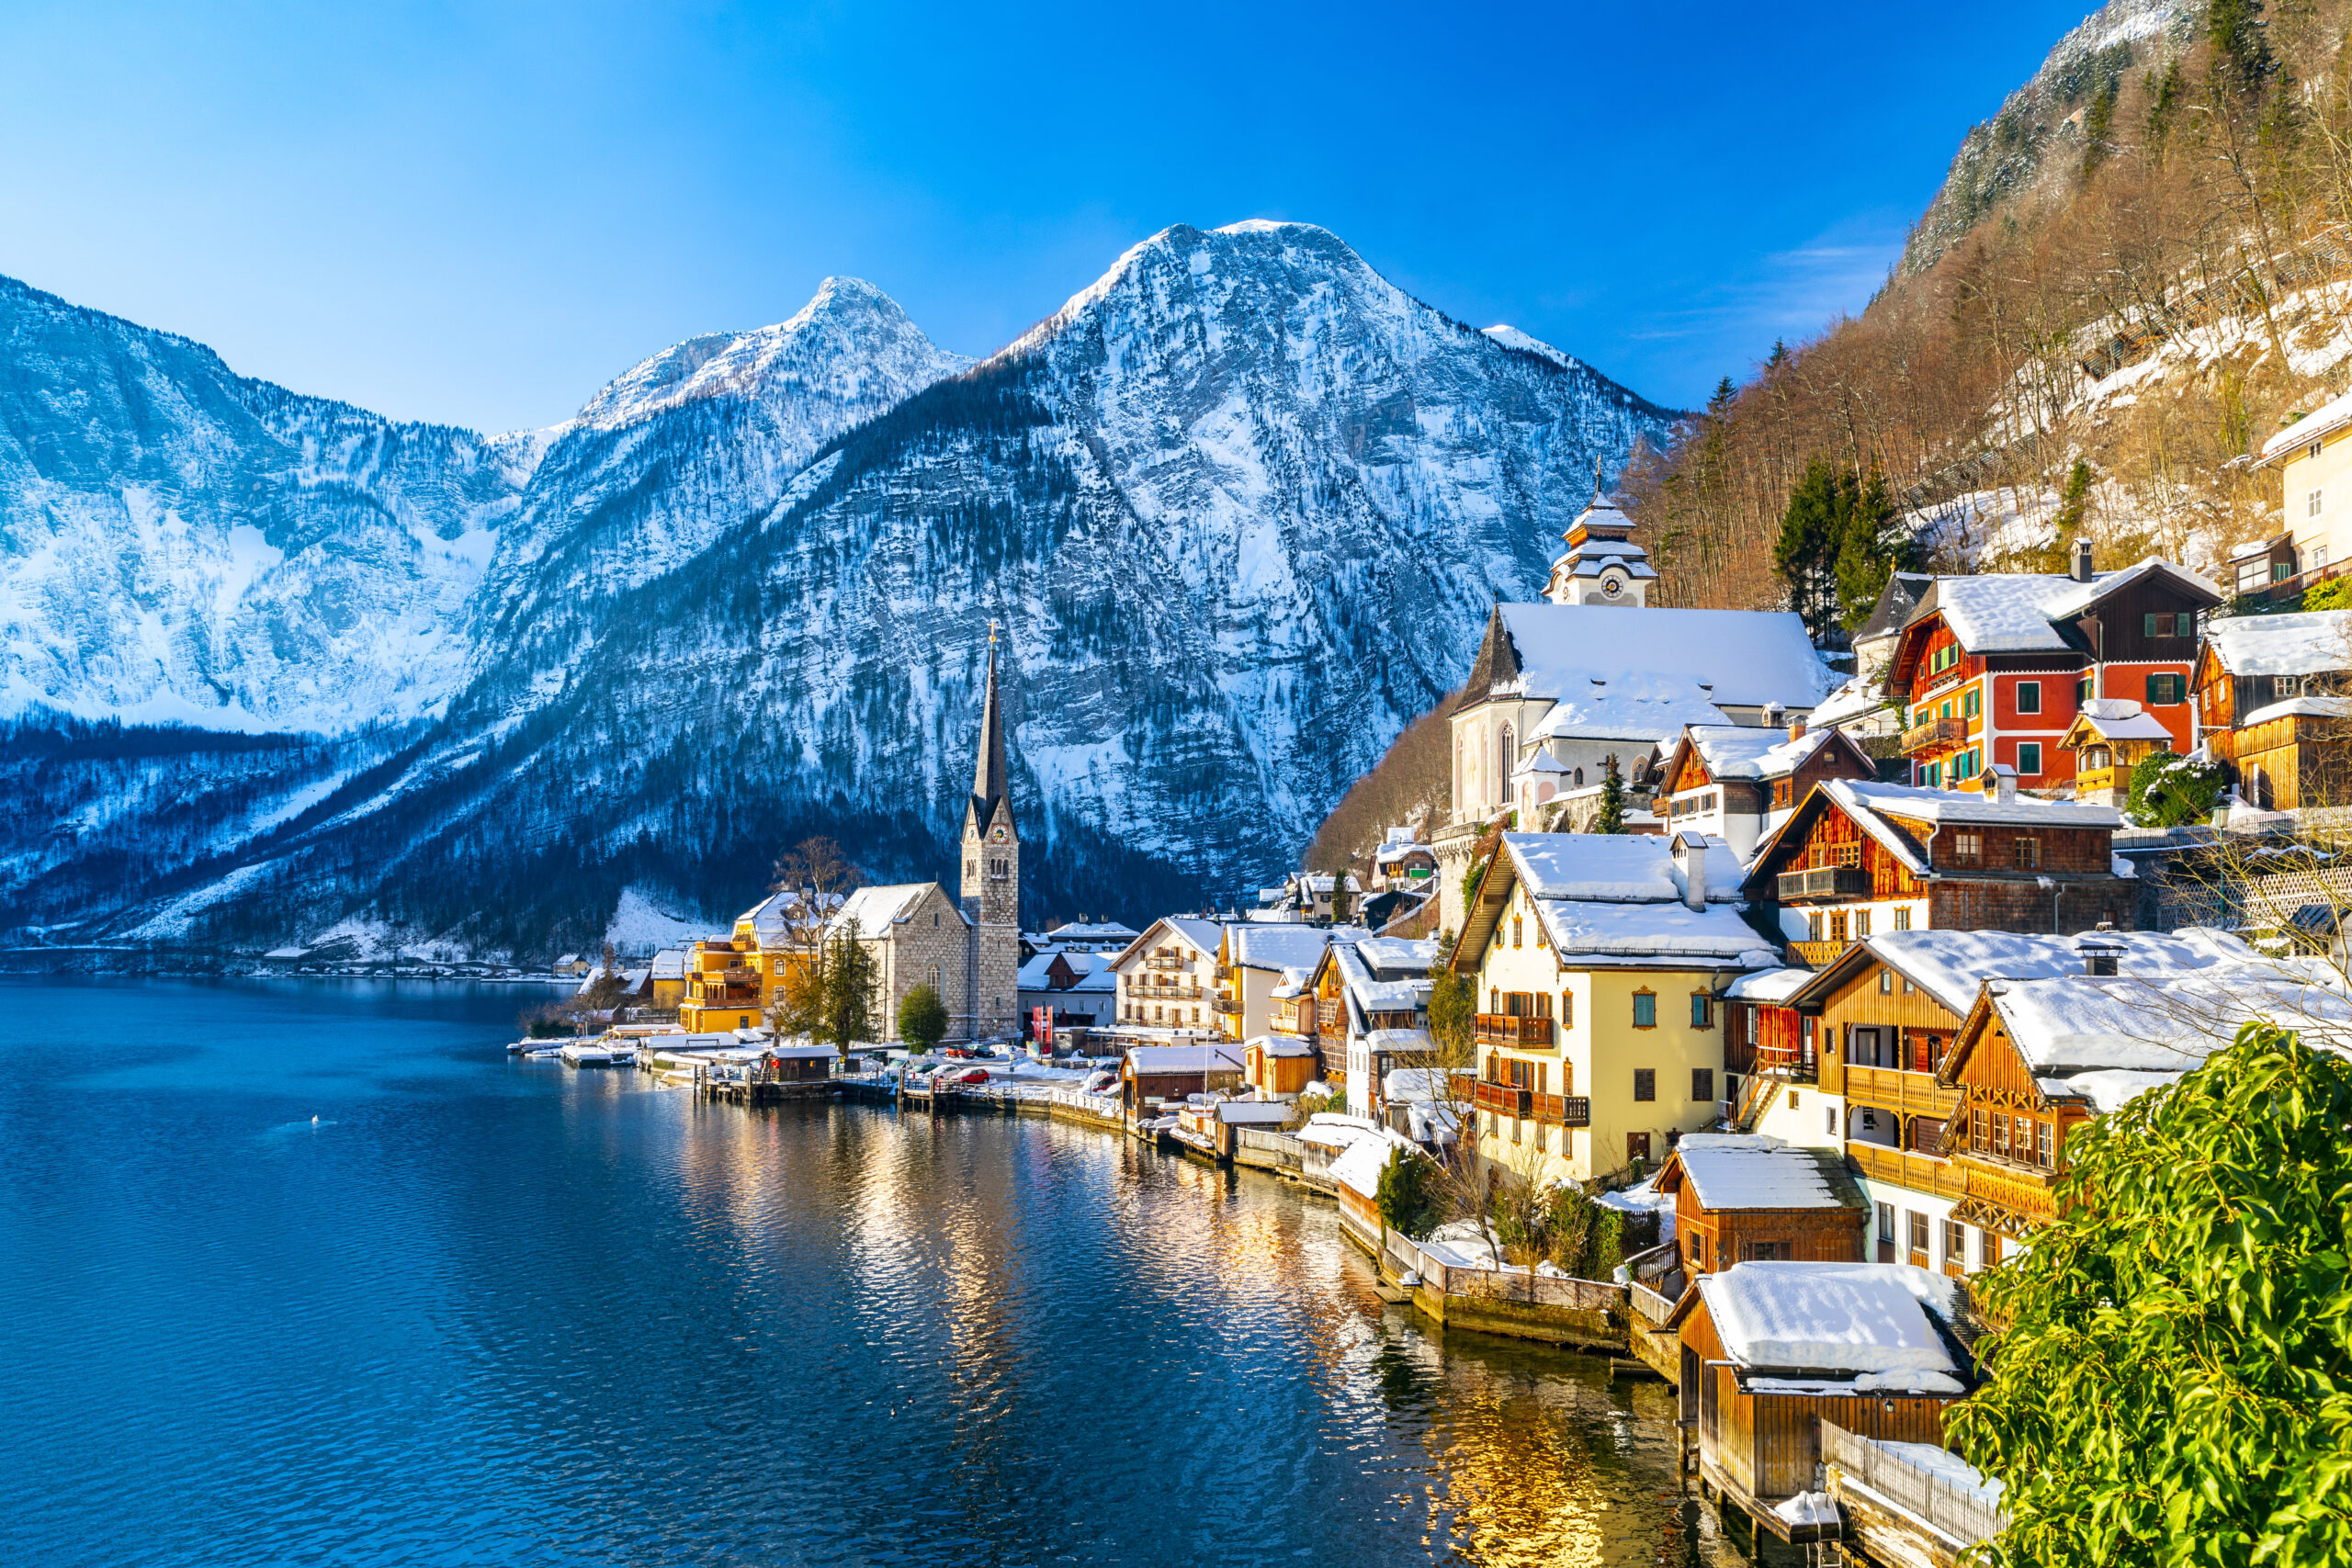 Photo of Hallstat, a small town in Austria, during winter. Colorful snow covered cottages are situated alongside a beautiful lake with a massive snowy mountain in the background.